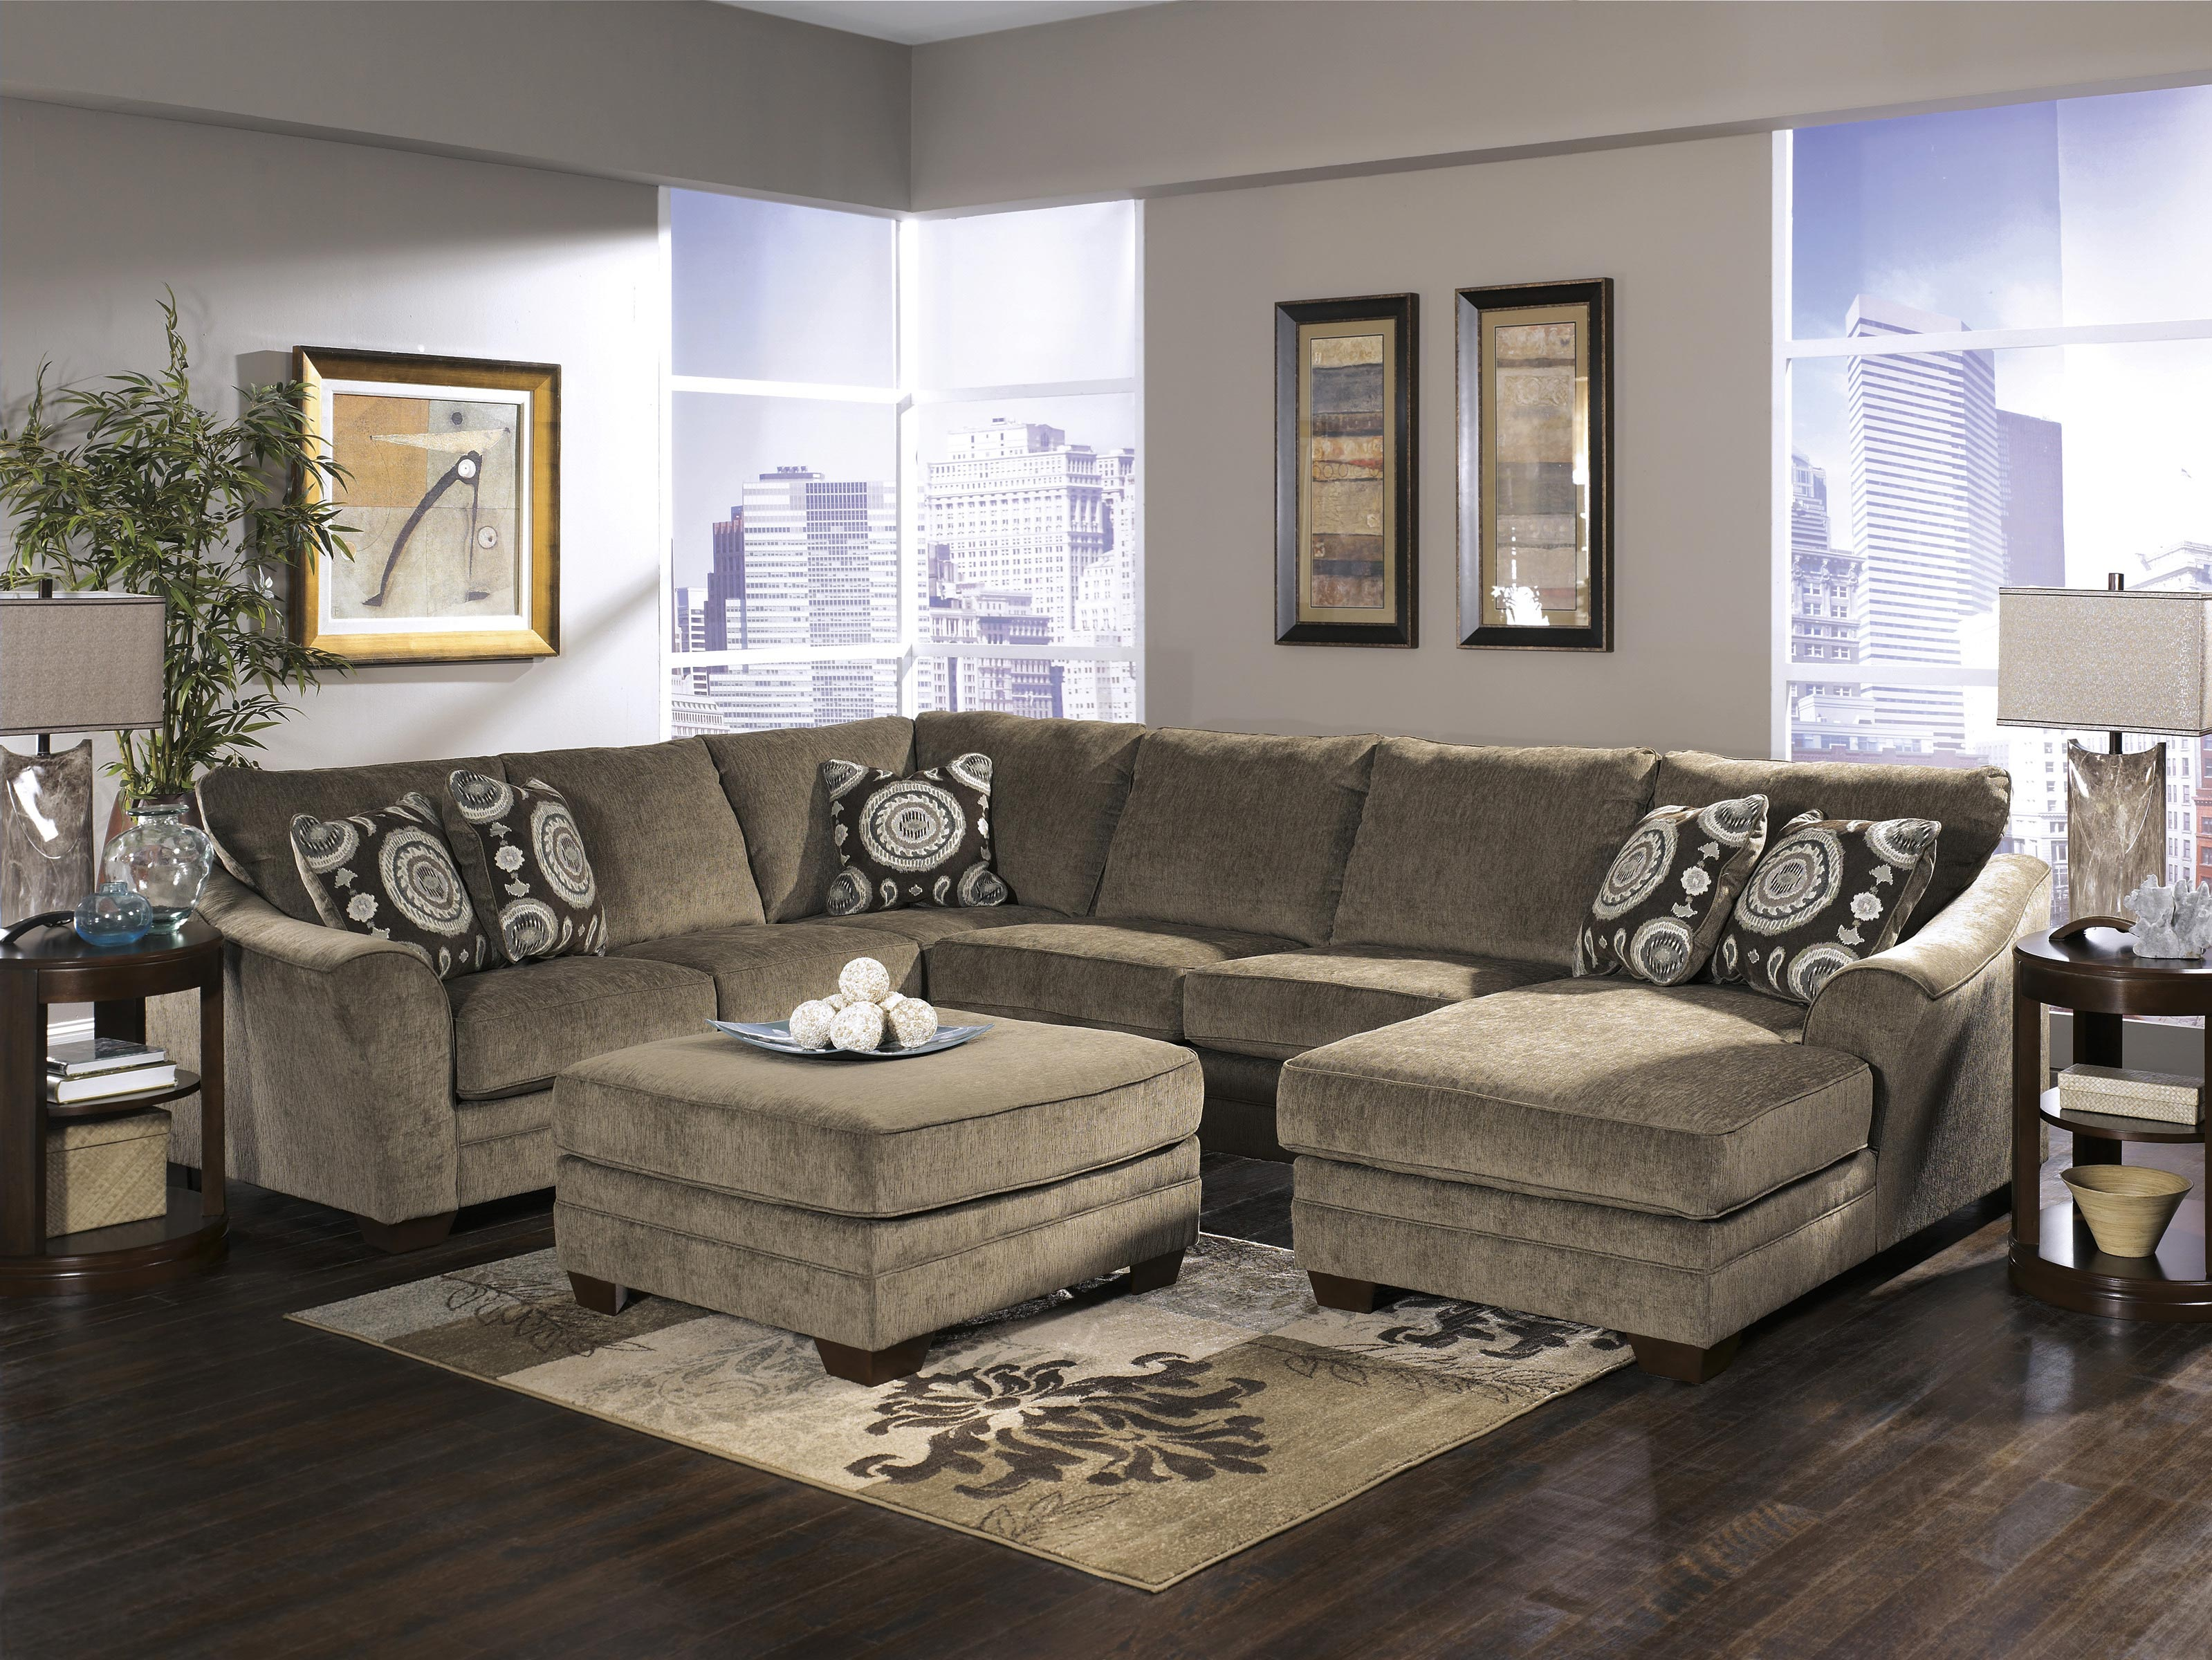 sectional sofa for living room round chair ideas with sectionals small